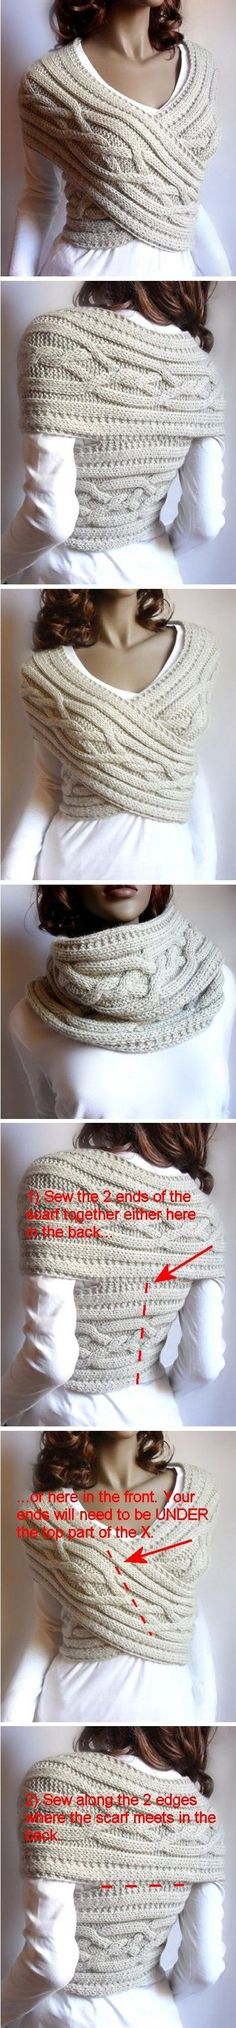 knitted and beautiful!